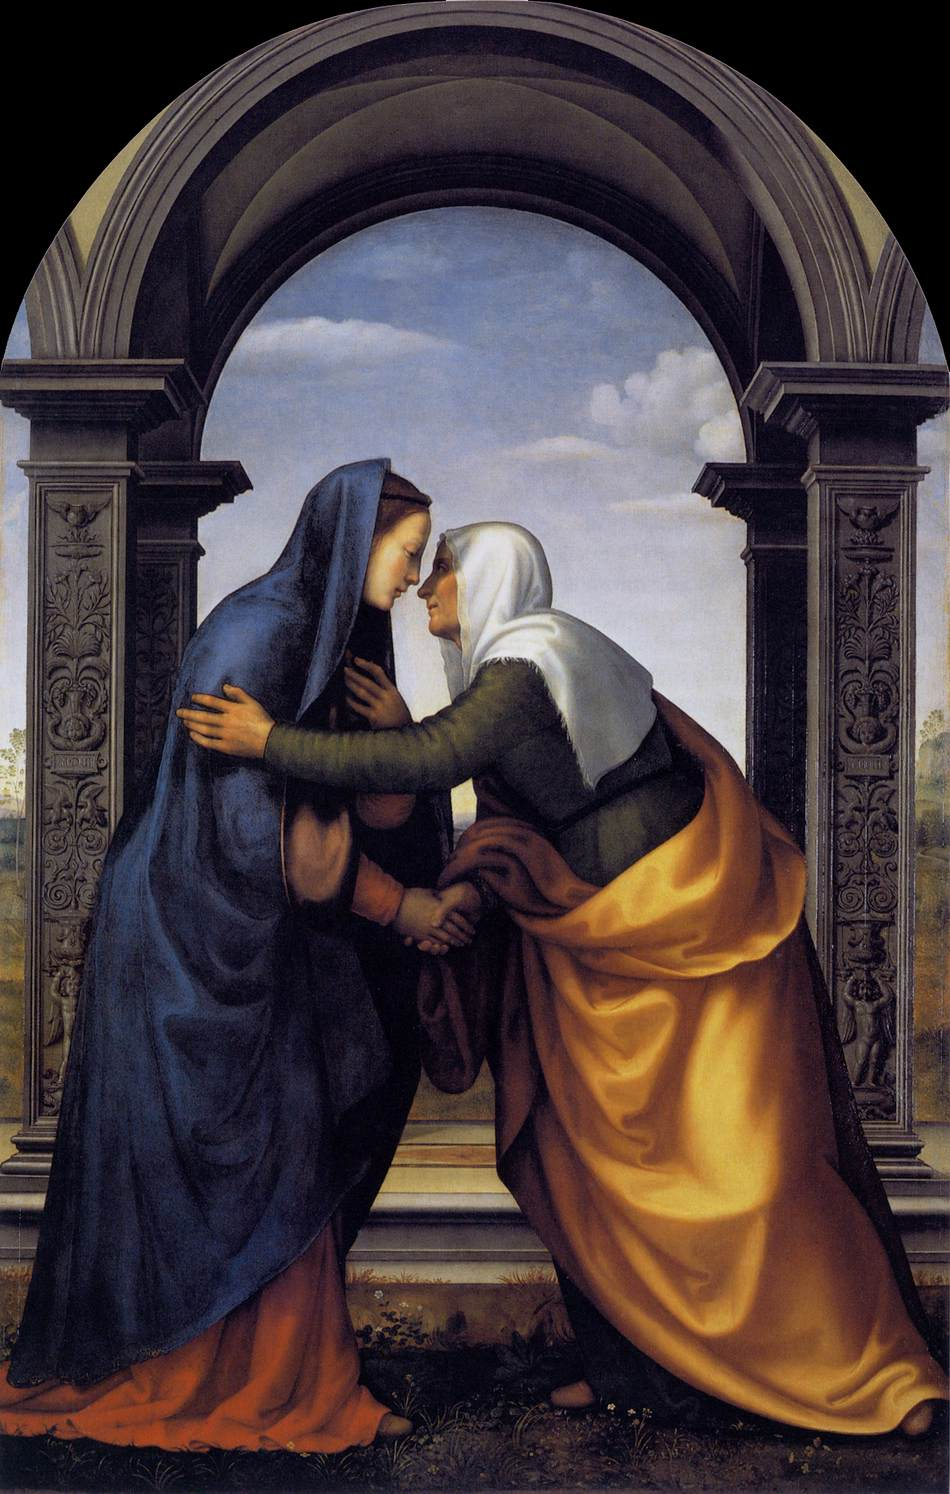 The Visitation of the Blessed Virgin Mary dans immagini sacre Visitation